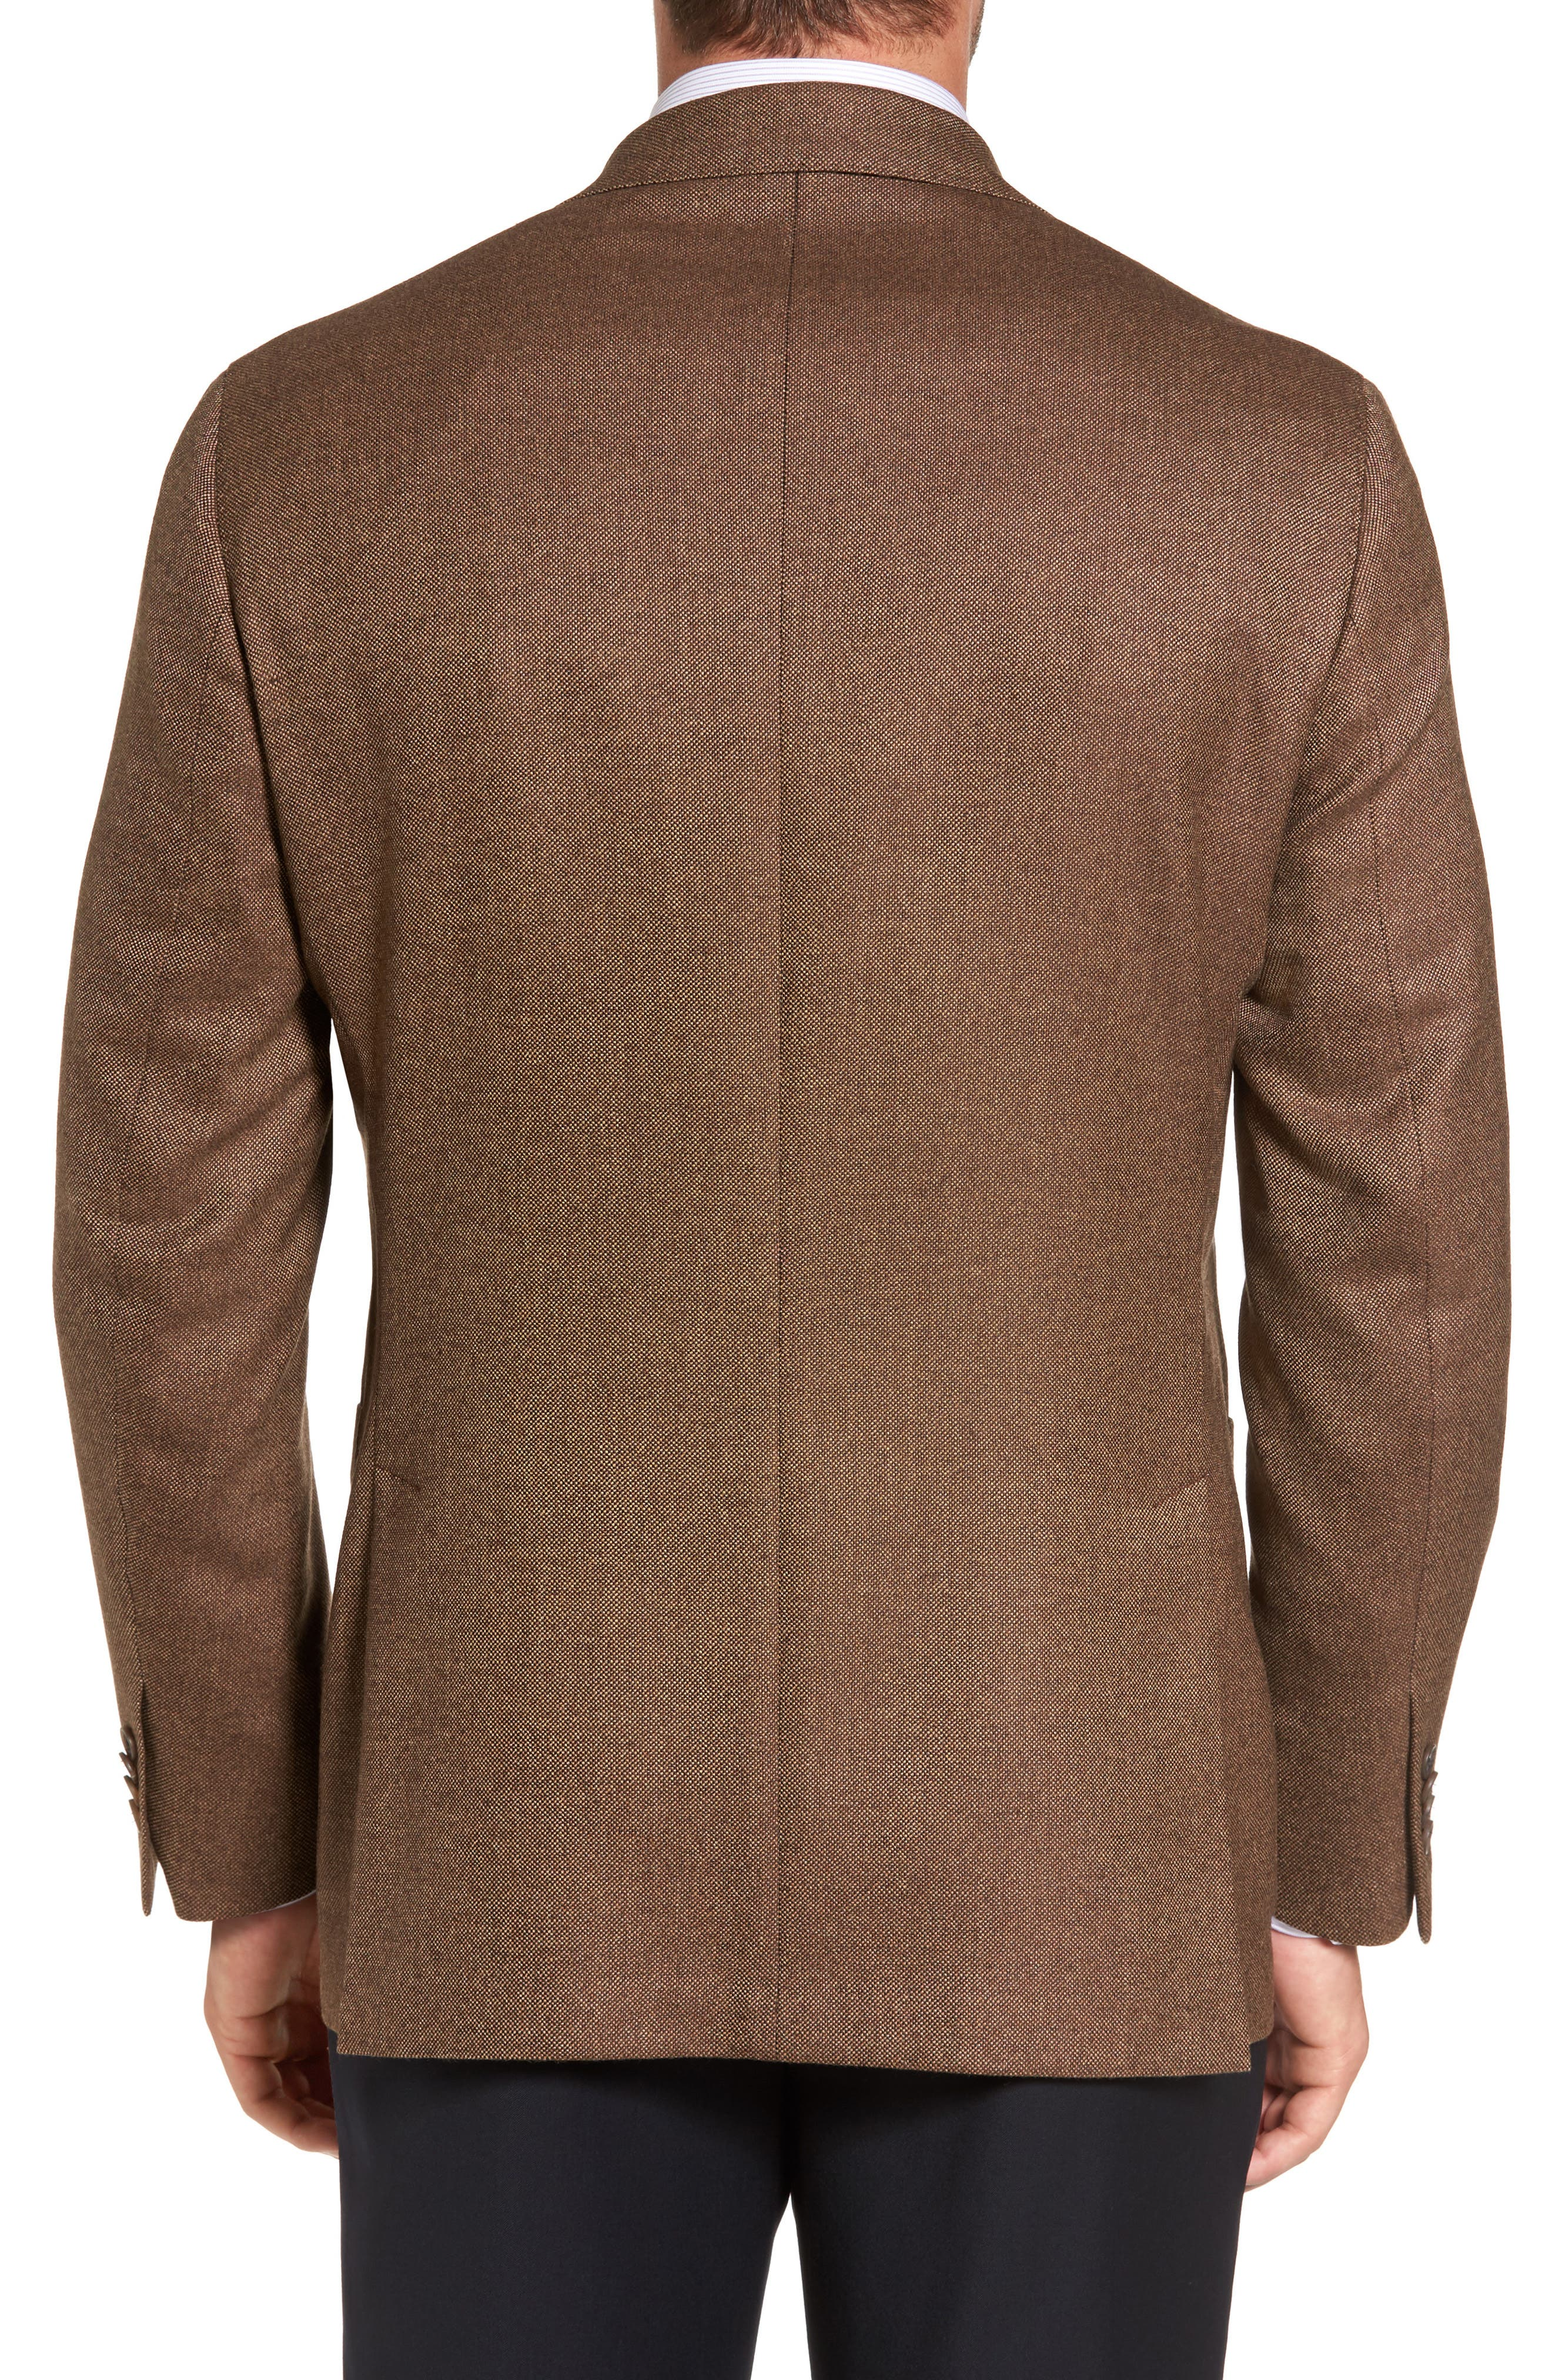 Aiden Classic Fit Wool Blazer,                             Alternate thumbnail 2, color,                             Light Brown